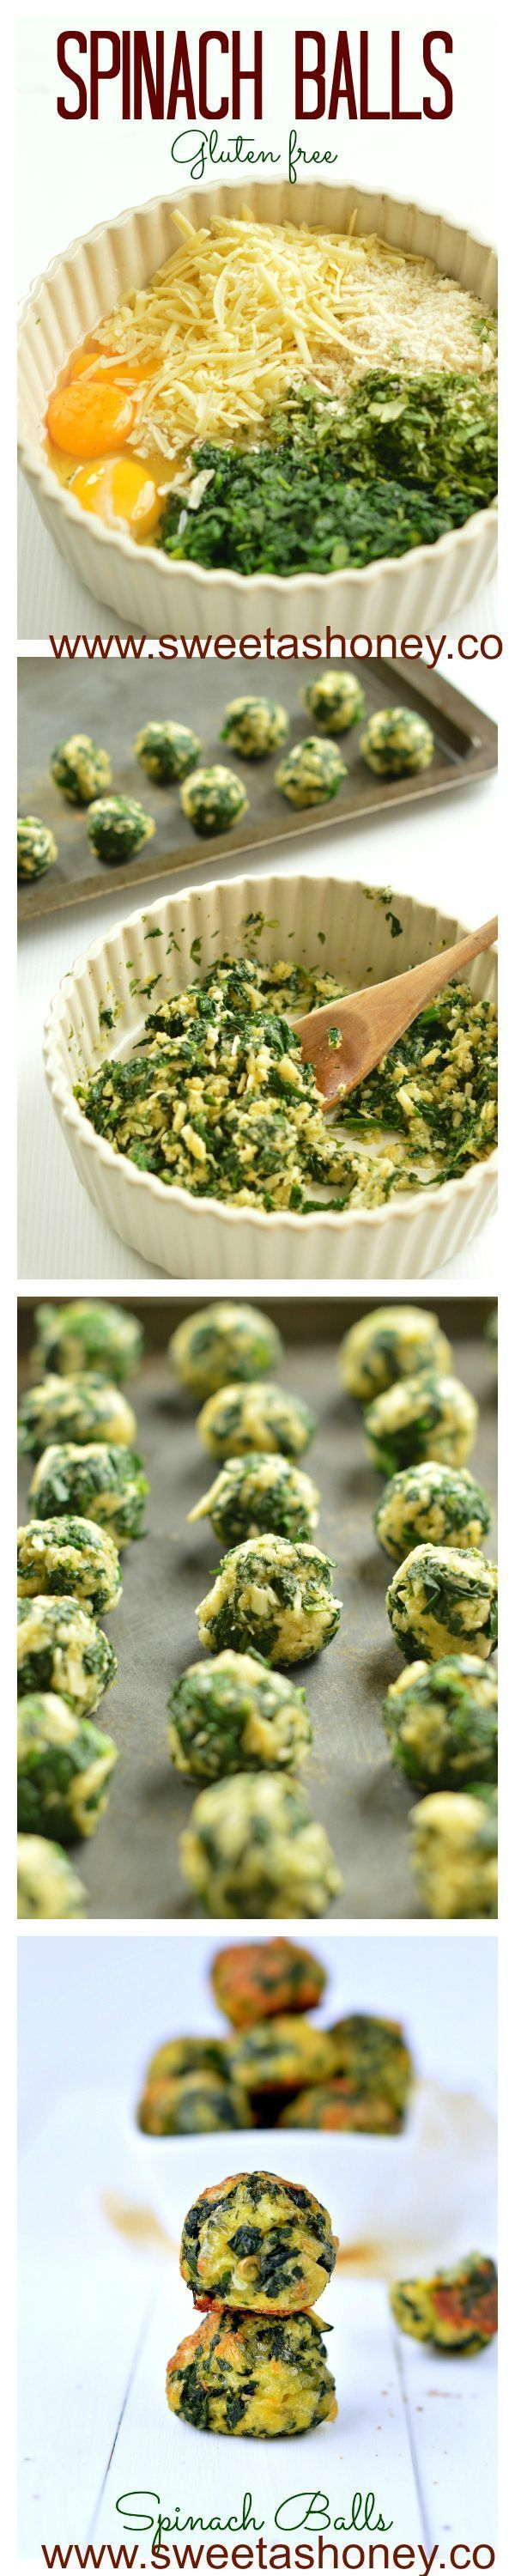 Spinach Balls | Best Spinach appetizers | Great Spinach clean eating recipes for summer. Great Christmas appetizer or holiday appetizer.